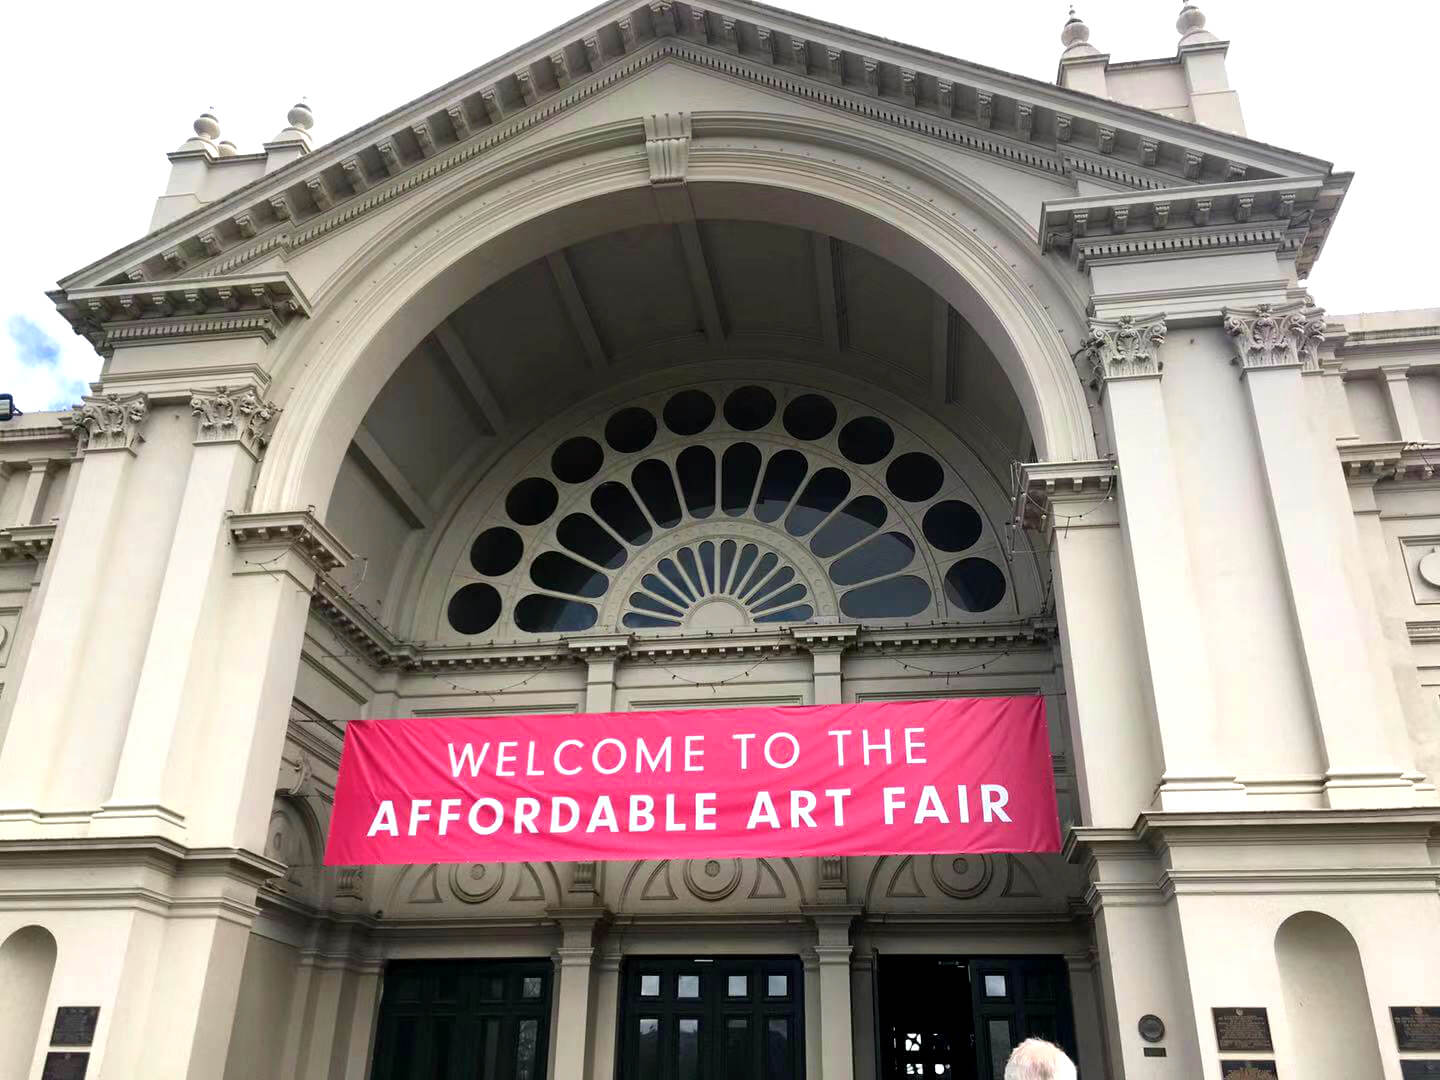 Sign for the Affordable Art Fair